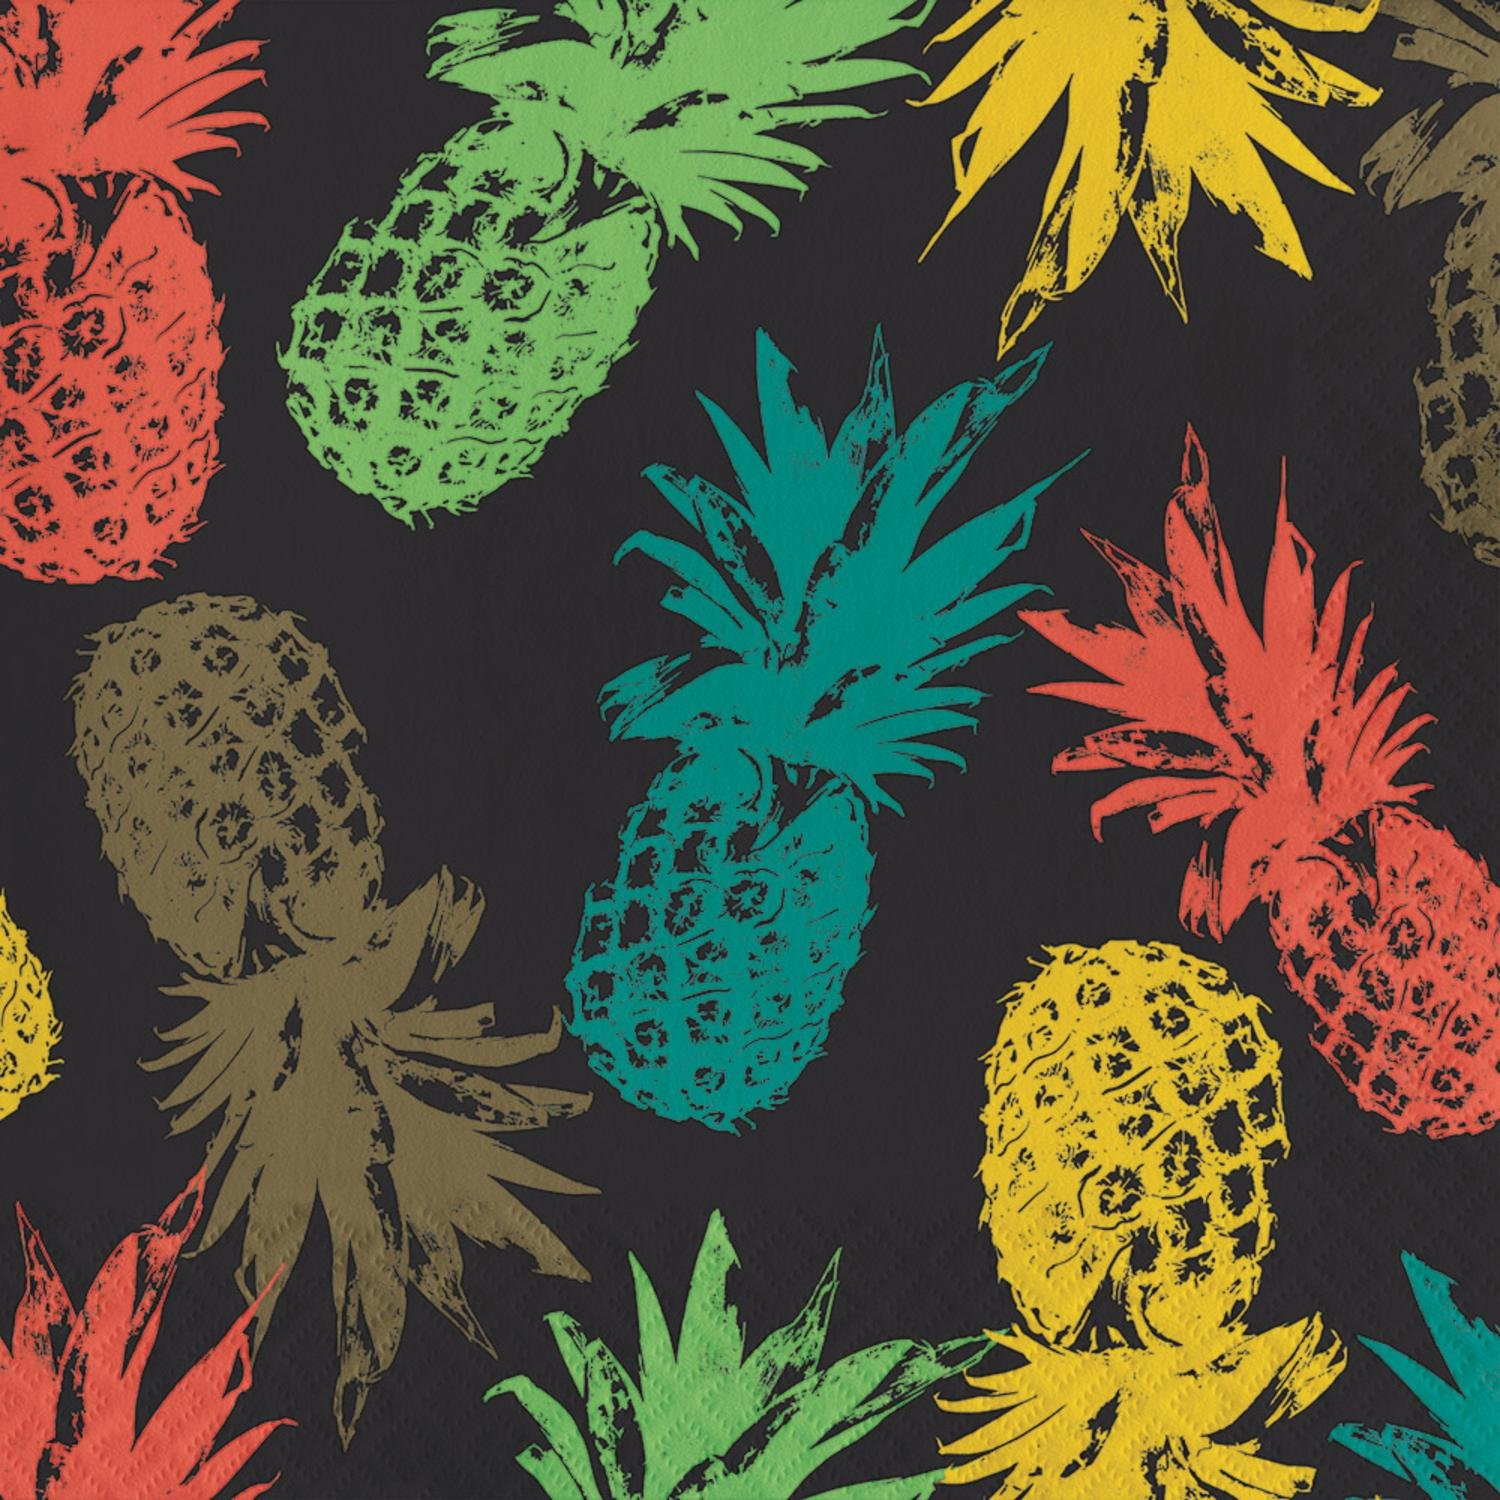 Pack of 192レッド、グリーンとイエローハバナPineapples 3本Luncheon Napkins 6.5